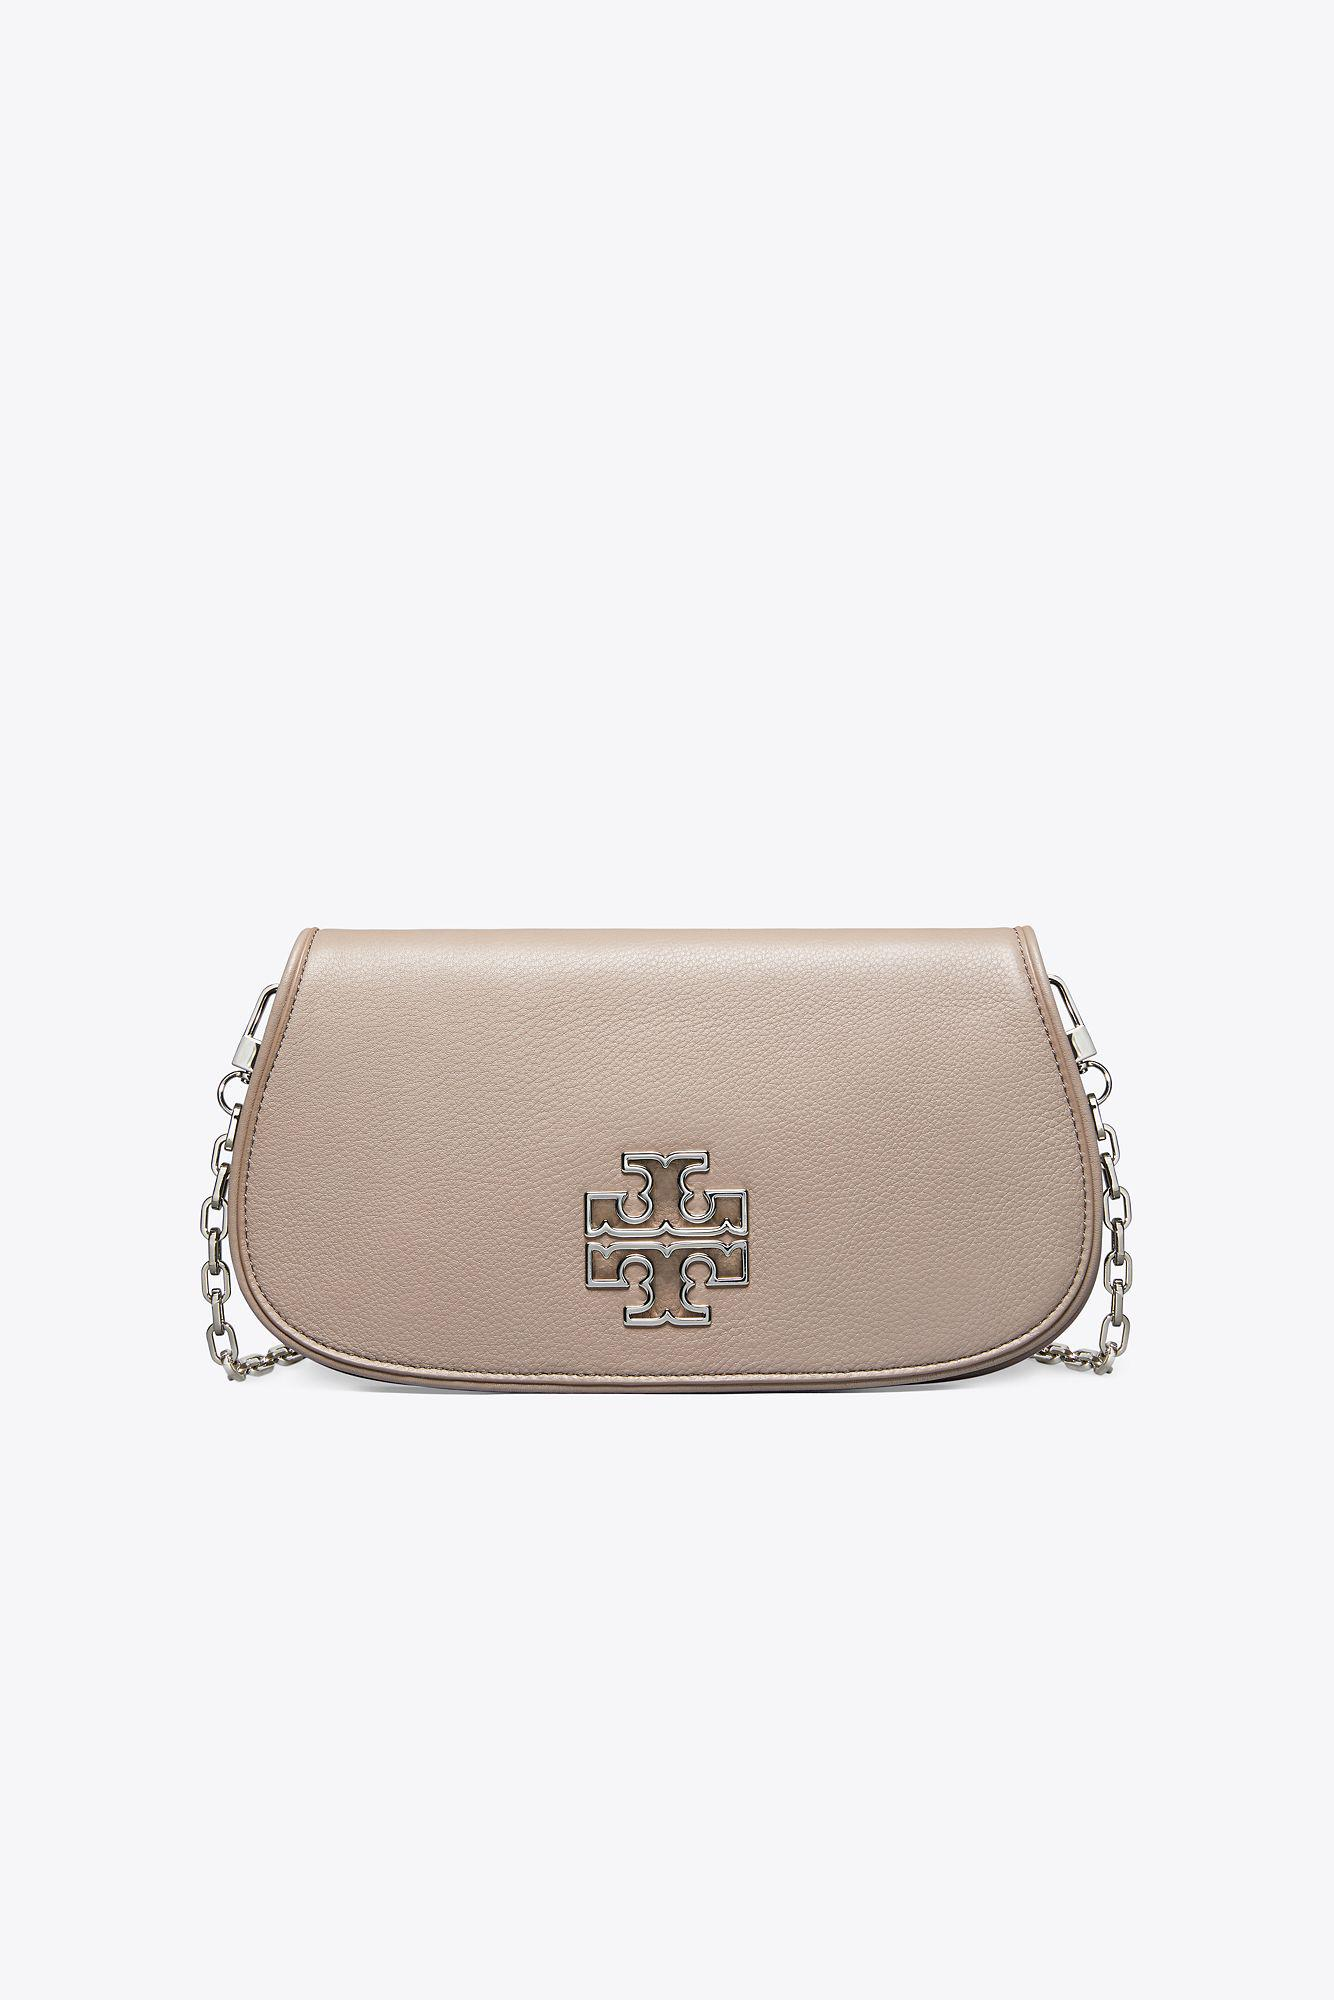 19ec8ba1b096 Tory Burch Britten Clutch in Gray - Lyst